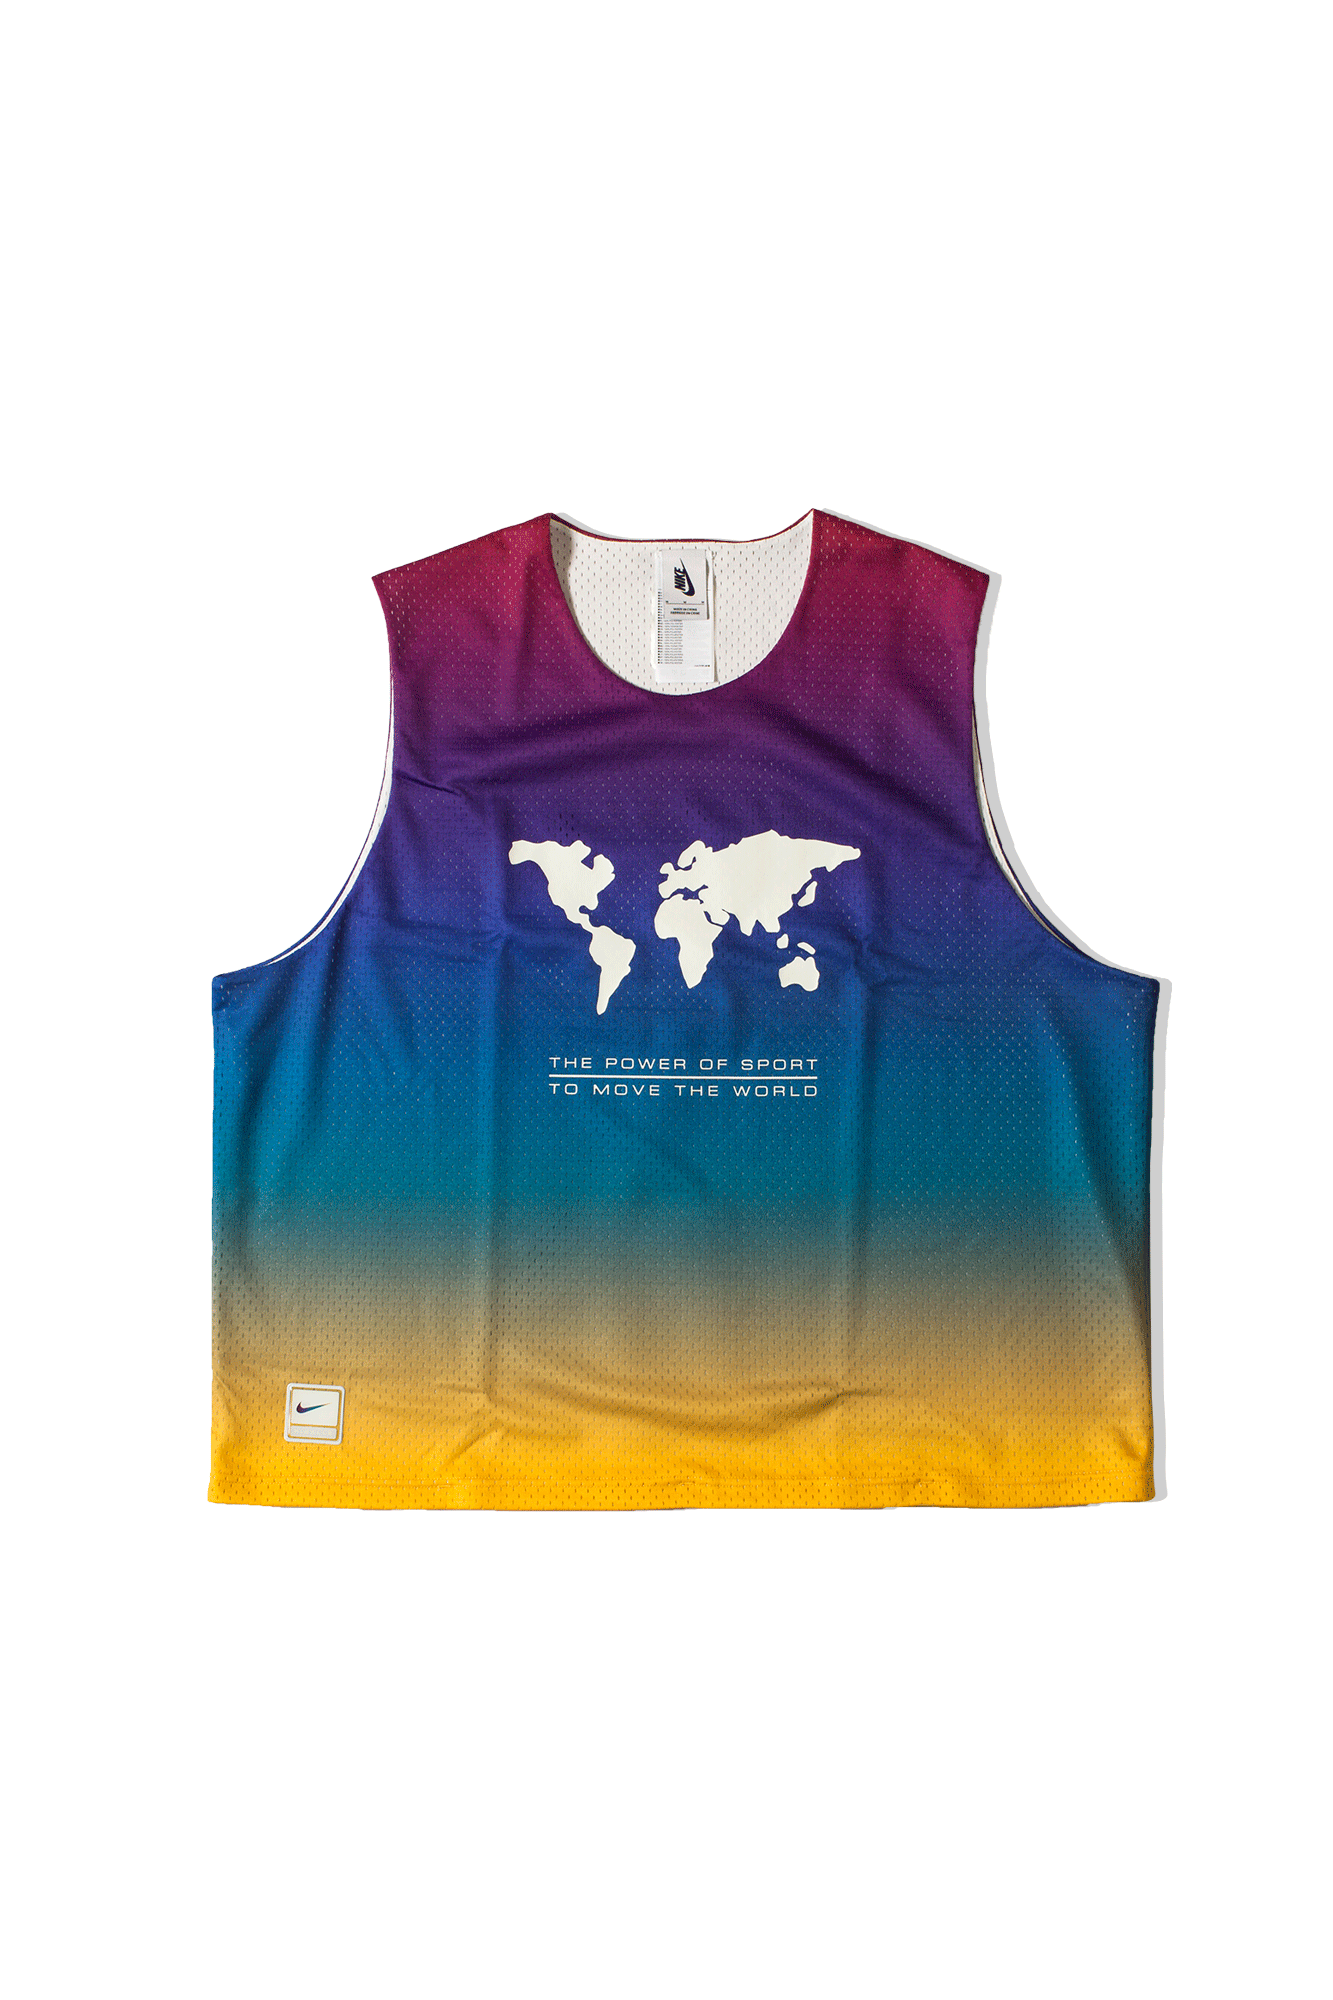 Nike Tank Top Tank JSY x Pigalle Purple CI9951-#000#547#XS - One Block Down